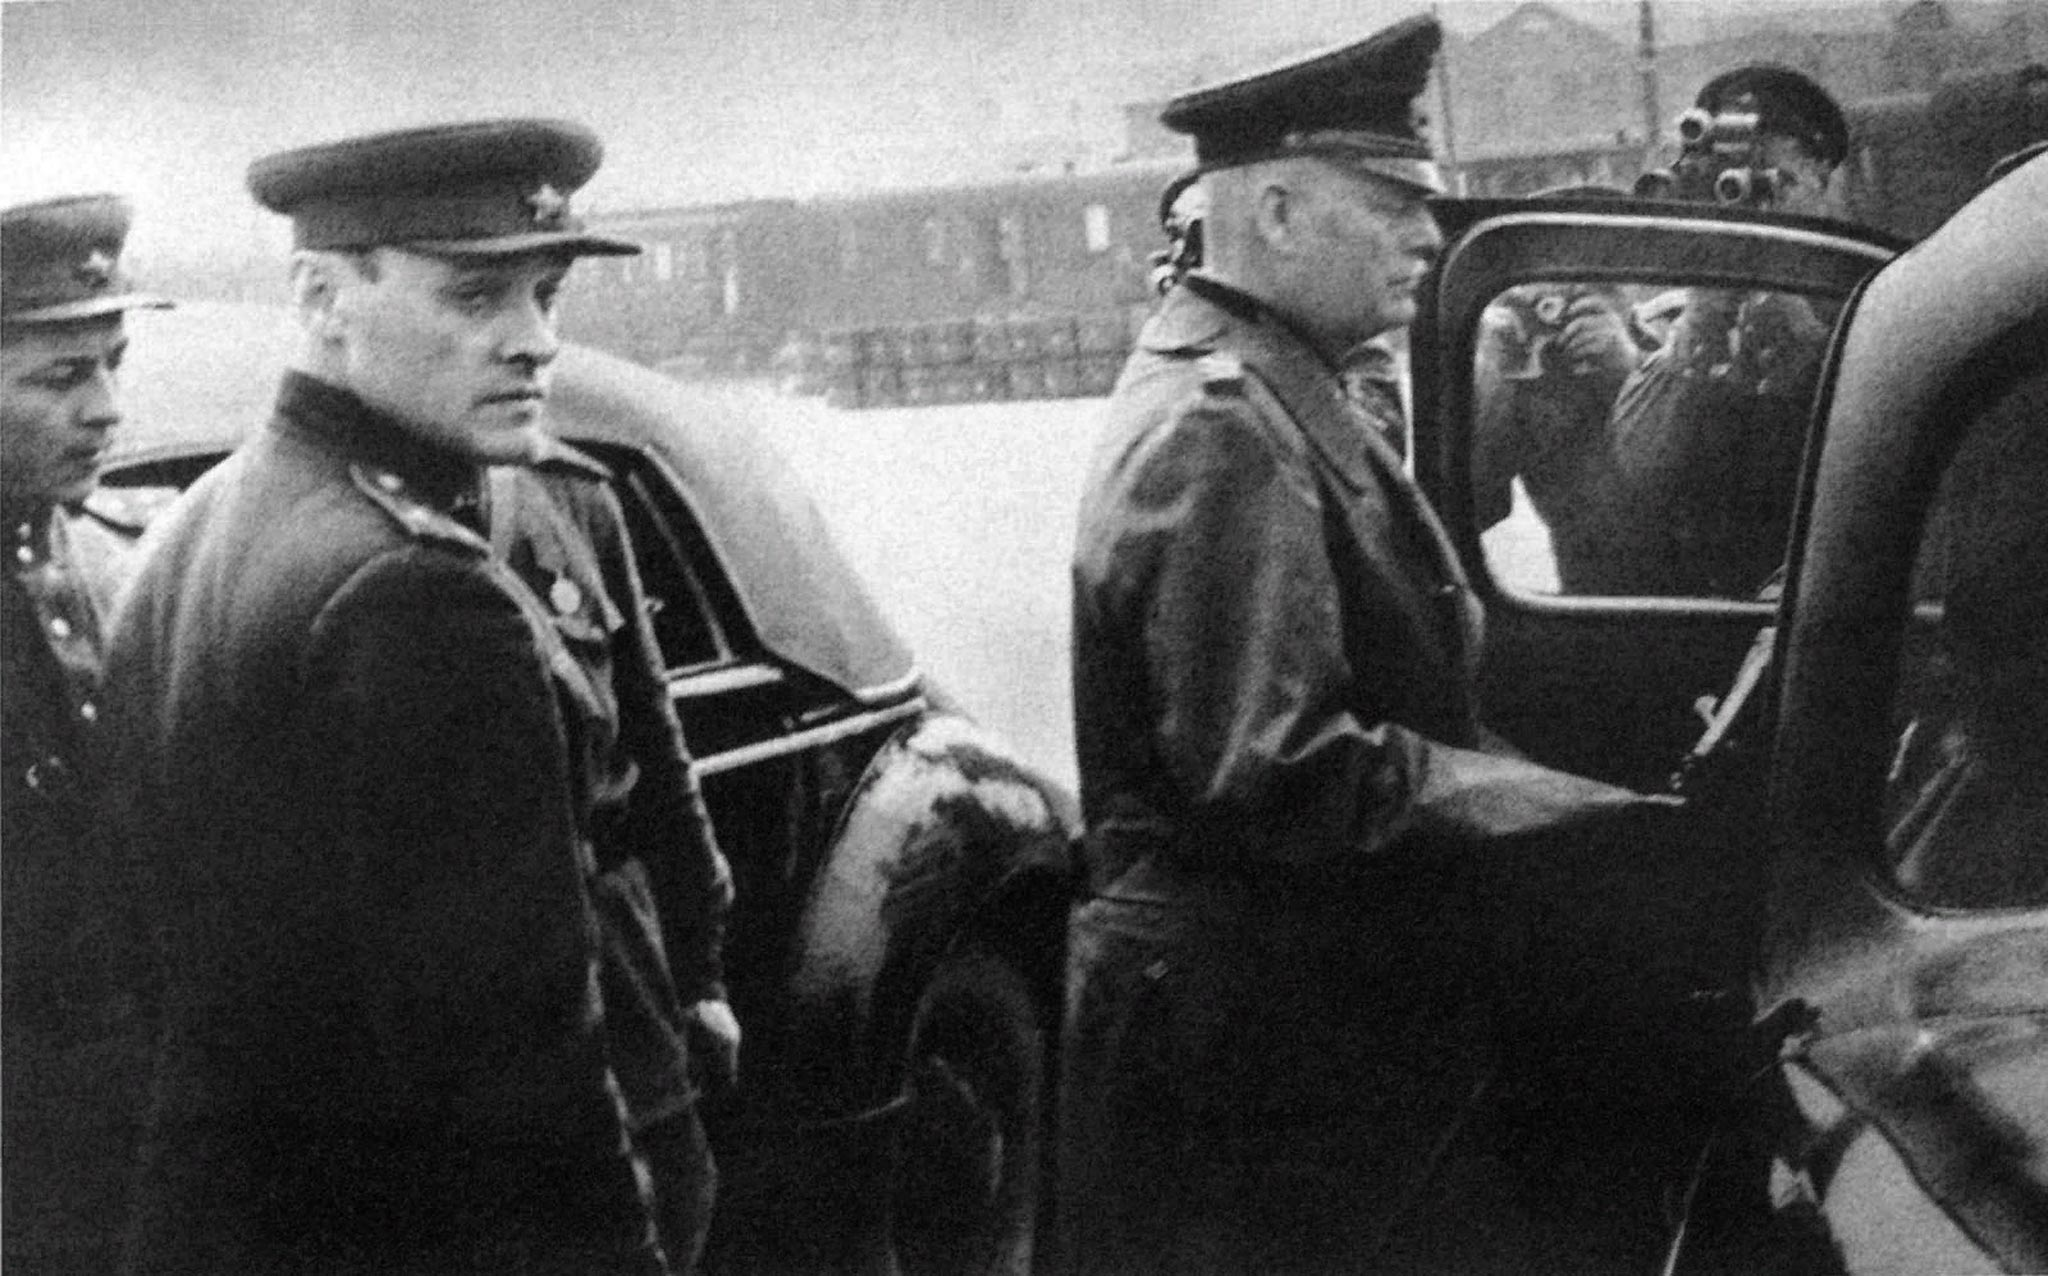 Wilhelm Keitel before the capitulation of Nazi Germany